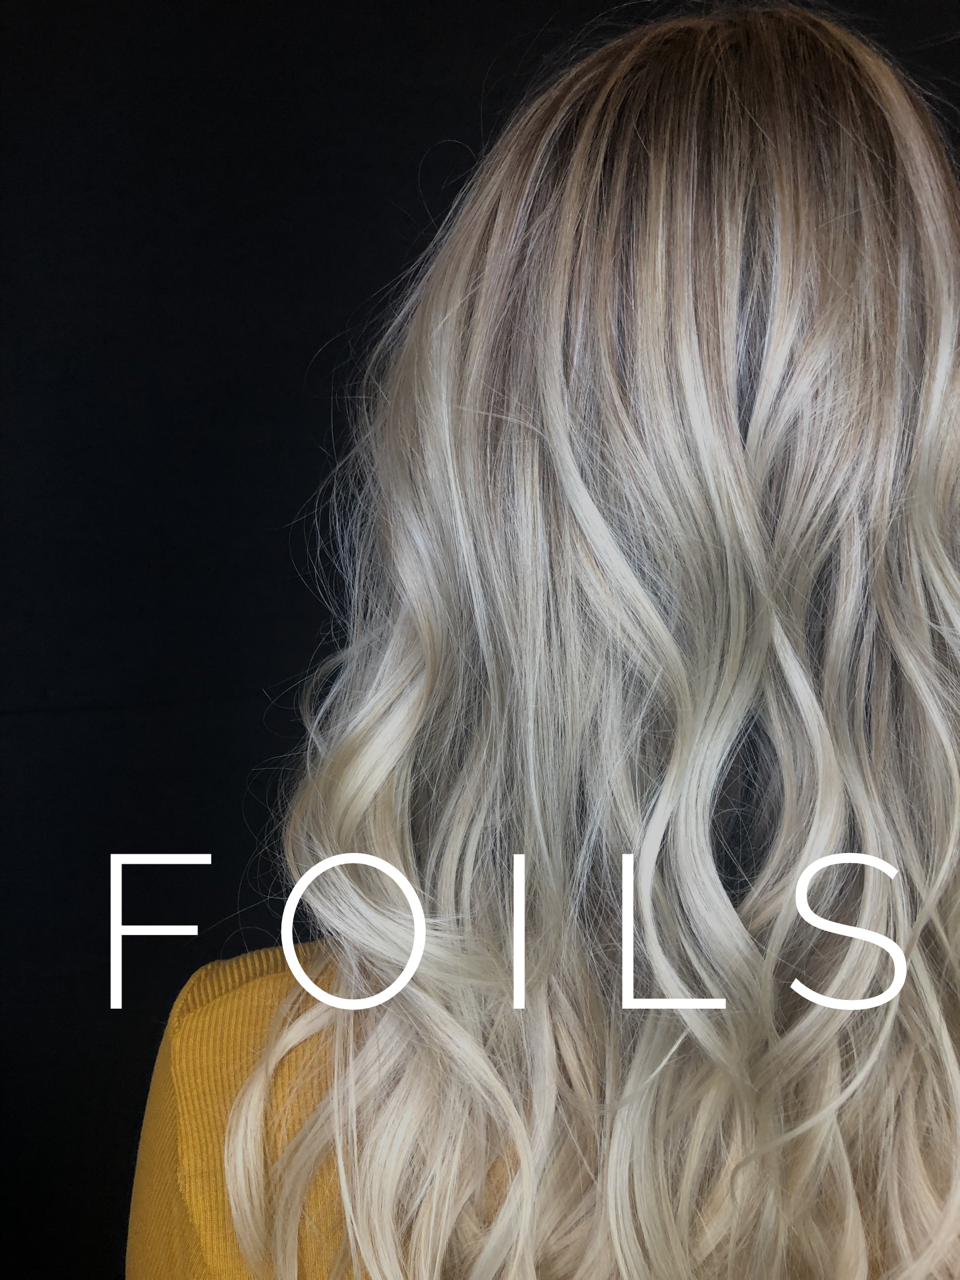 BLONDING - Highlights | Each 9 | Partial 135+ | Full 175+Specialty Foilwork | Starting at 210+*Add On Gloss w/ any color service | 30*Add On a Haircut & Blow Dry | 55*Add On a Blow Dry or Waves | 45*Larissa Lake and Co. reserves the right to increase all rates due to density, length & experience